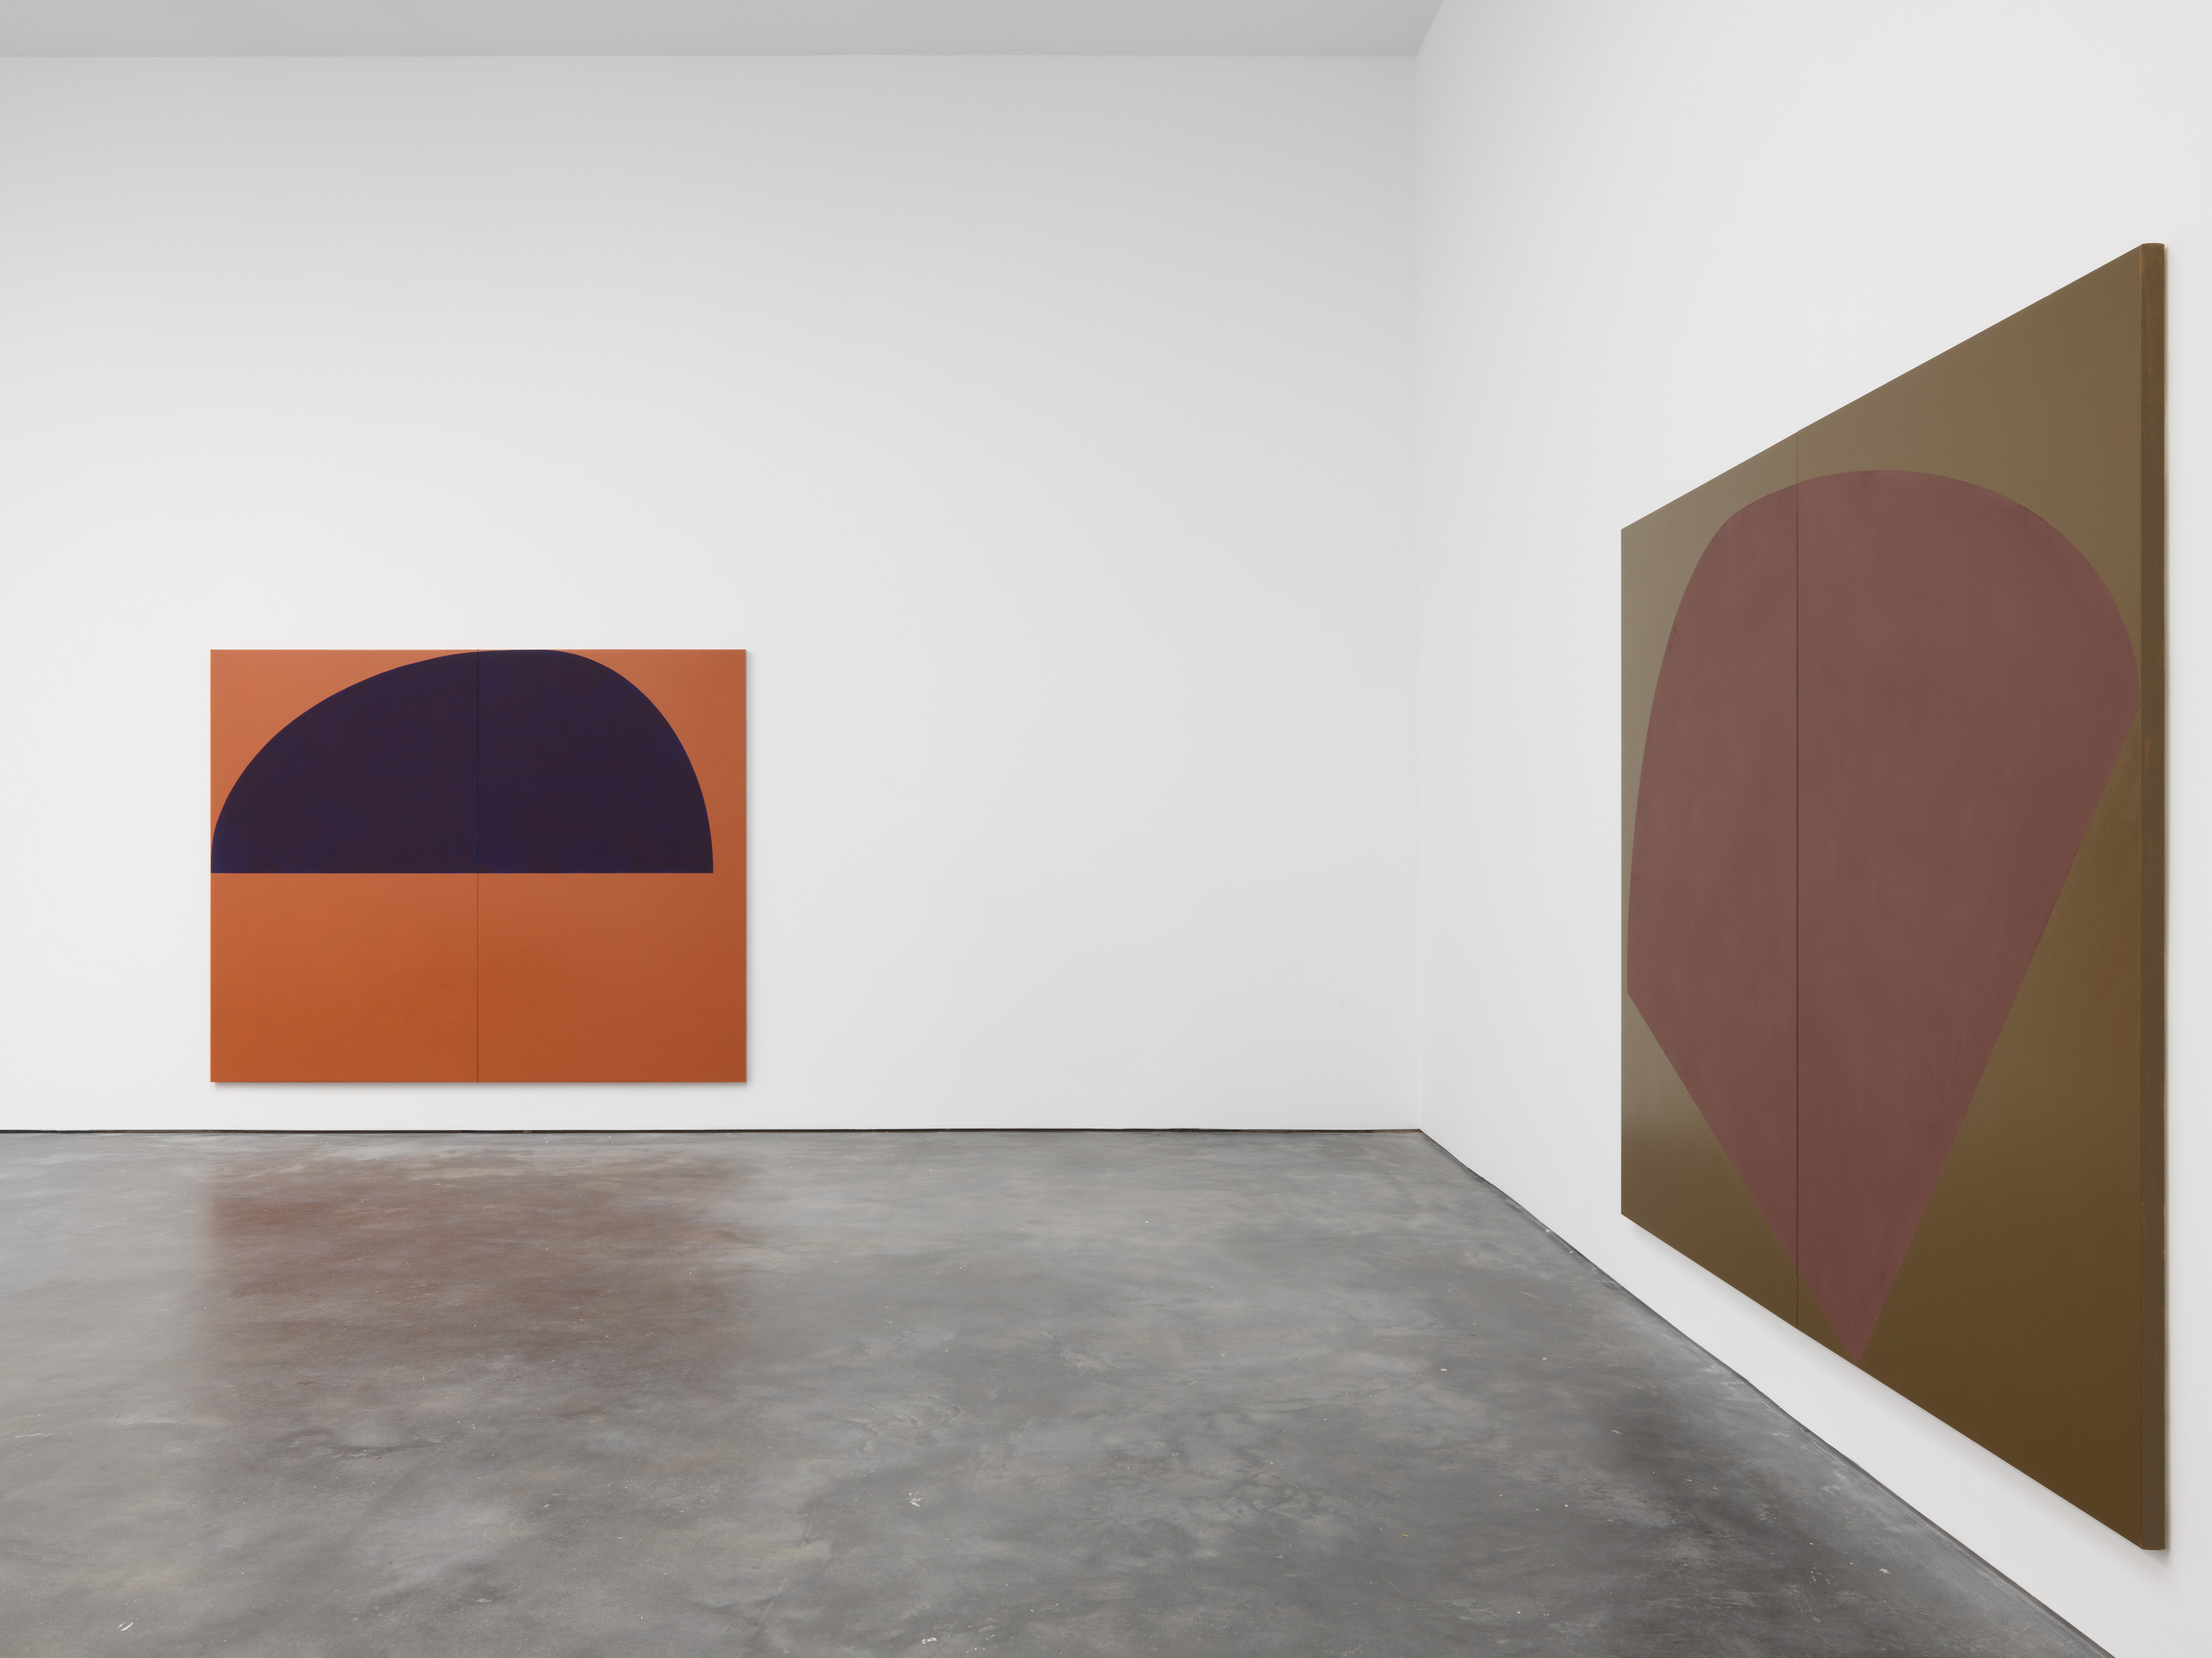 Installation view 4, Suzan Frecon: oil paintings, David Zwirner, New York, 2020 Courtesy David Zwirner